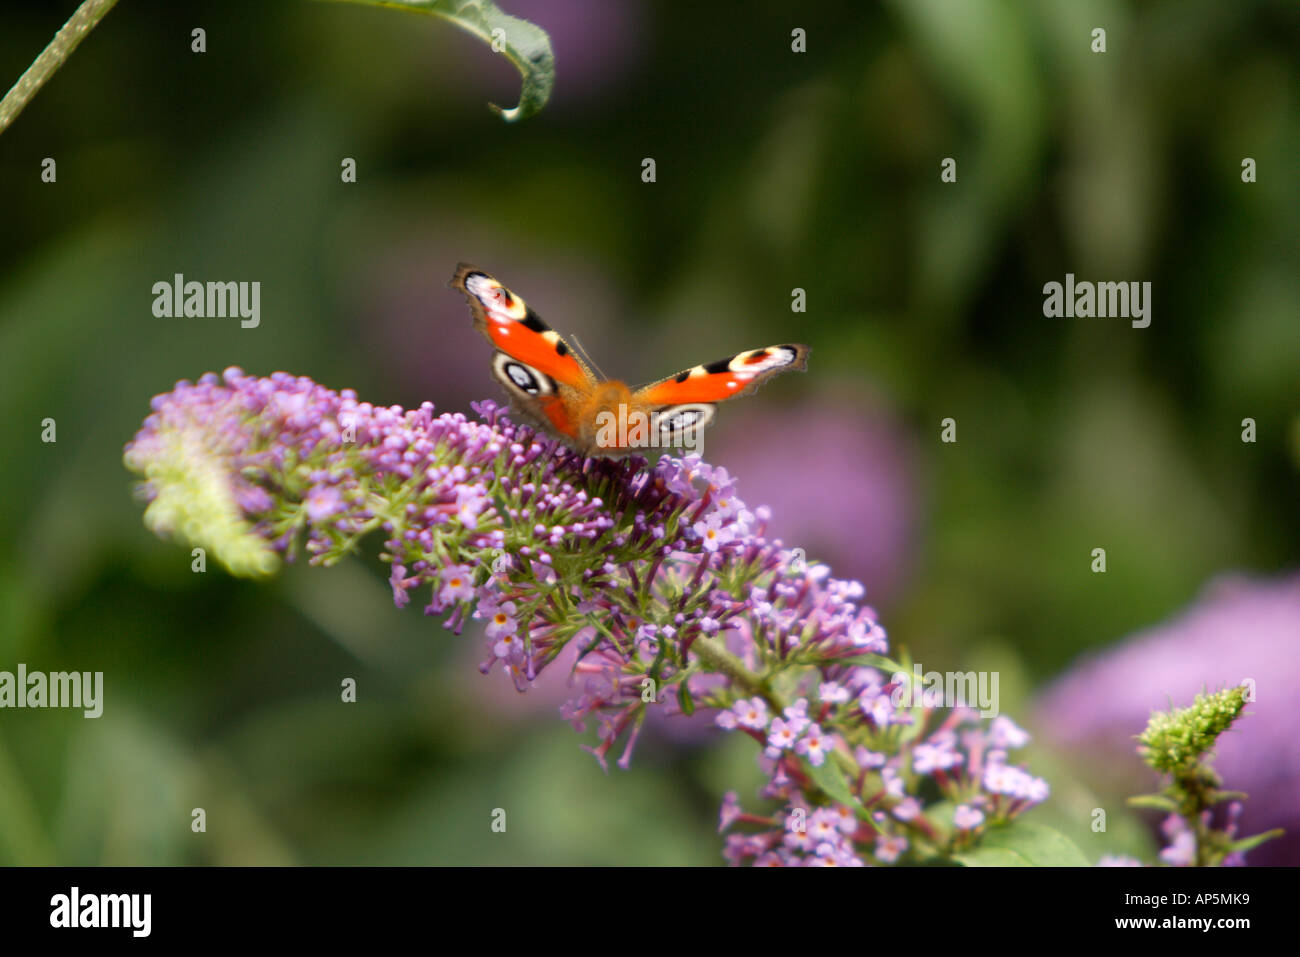 Peacock Butterfly On Buddleia Flower Stock Photo